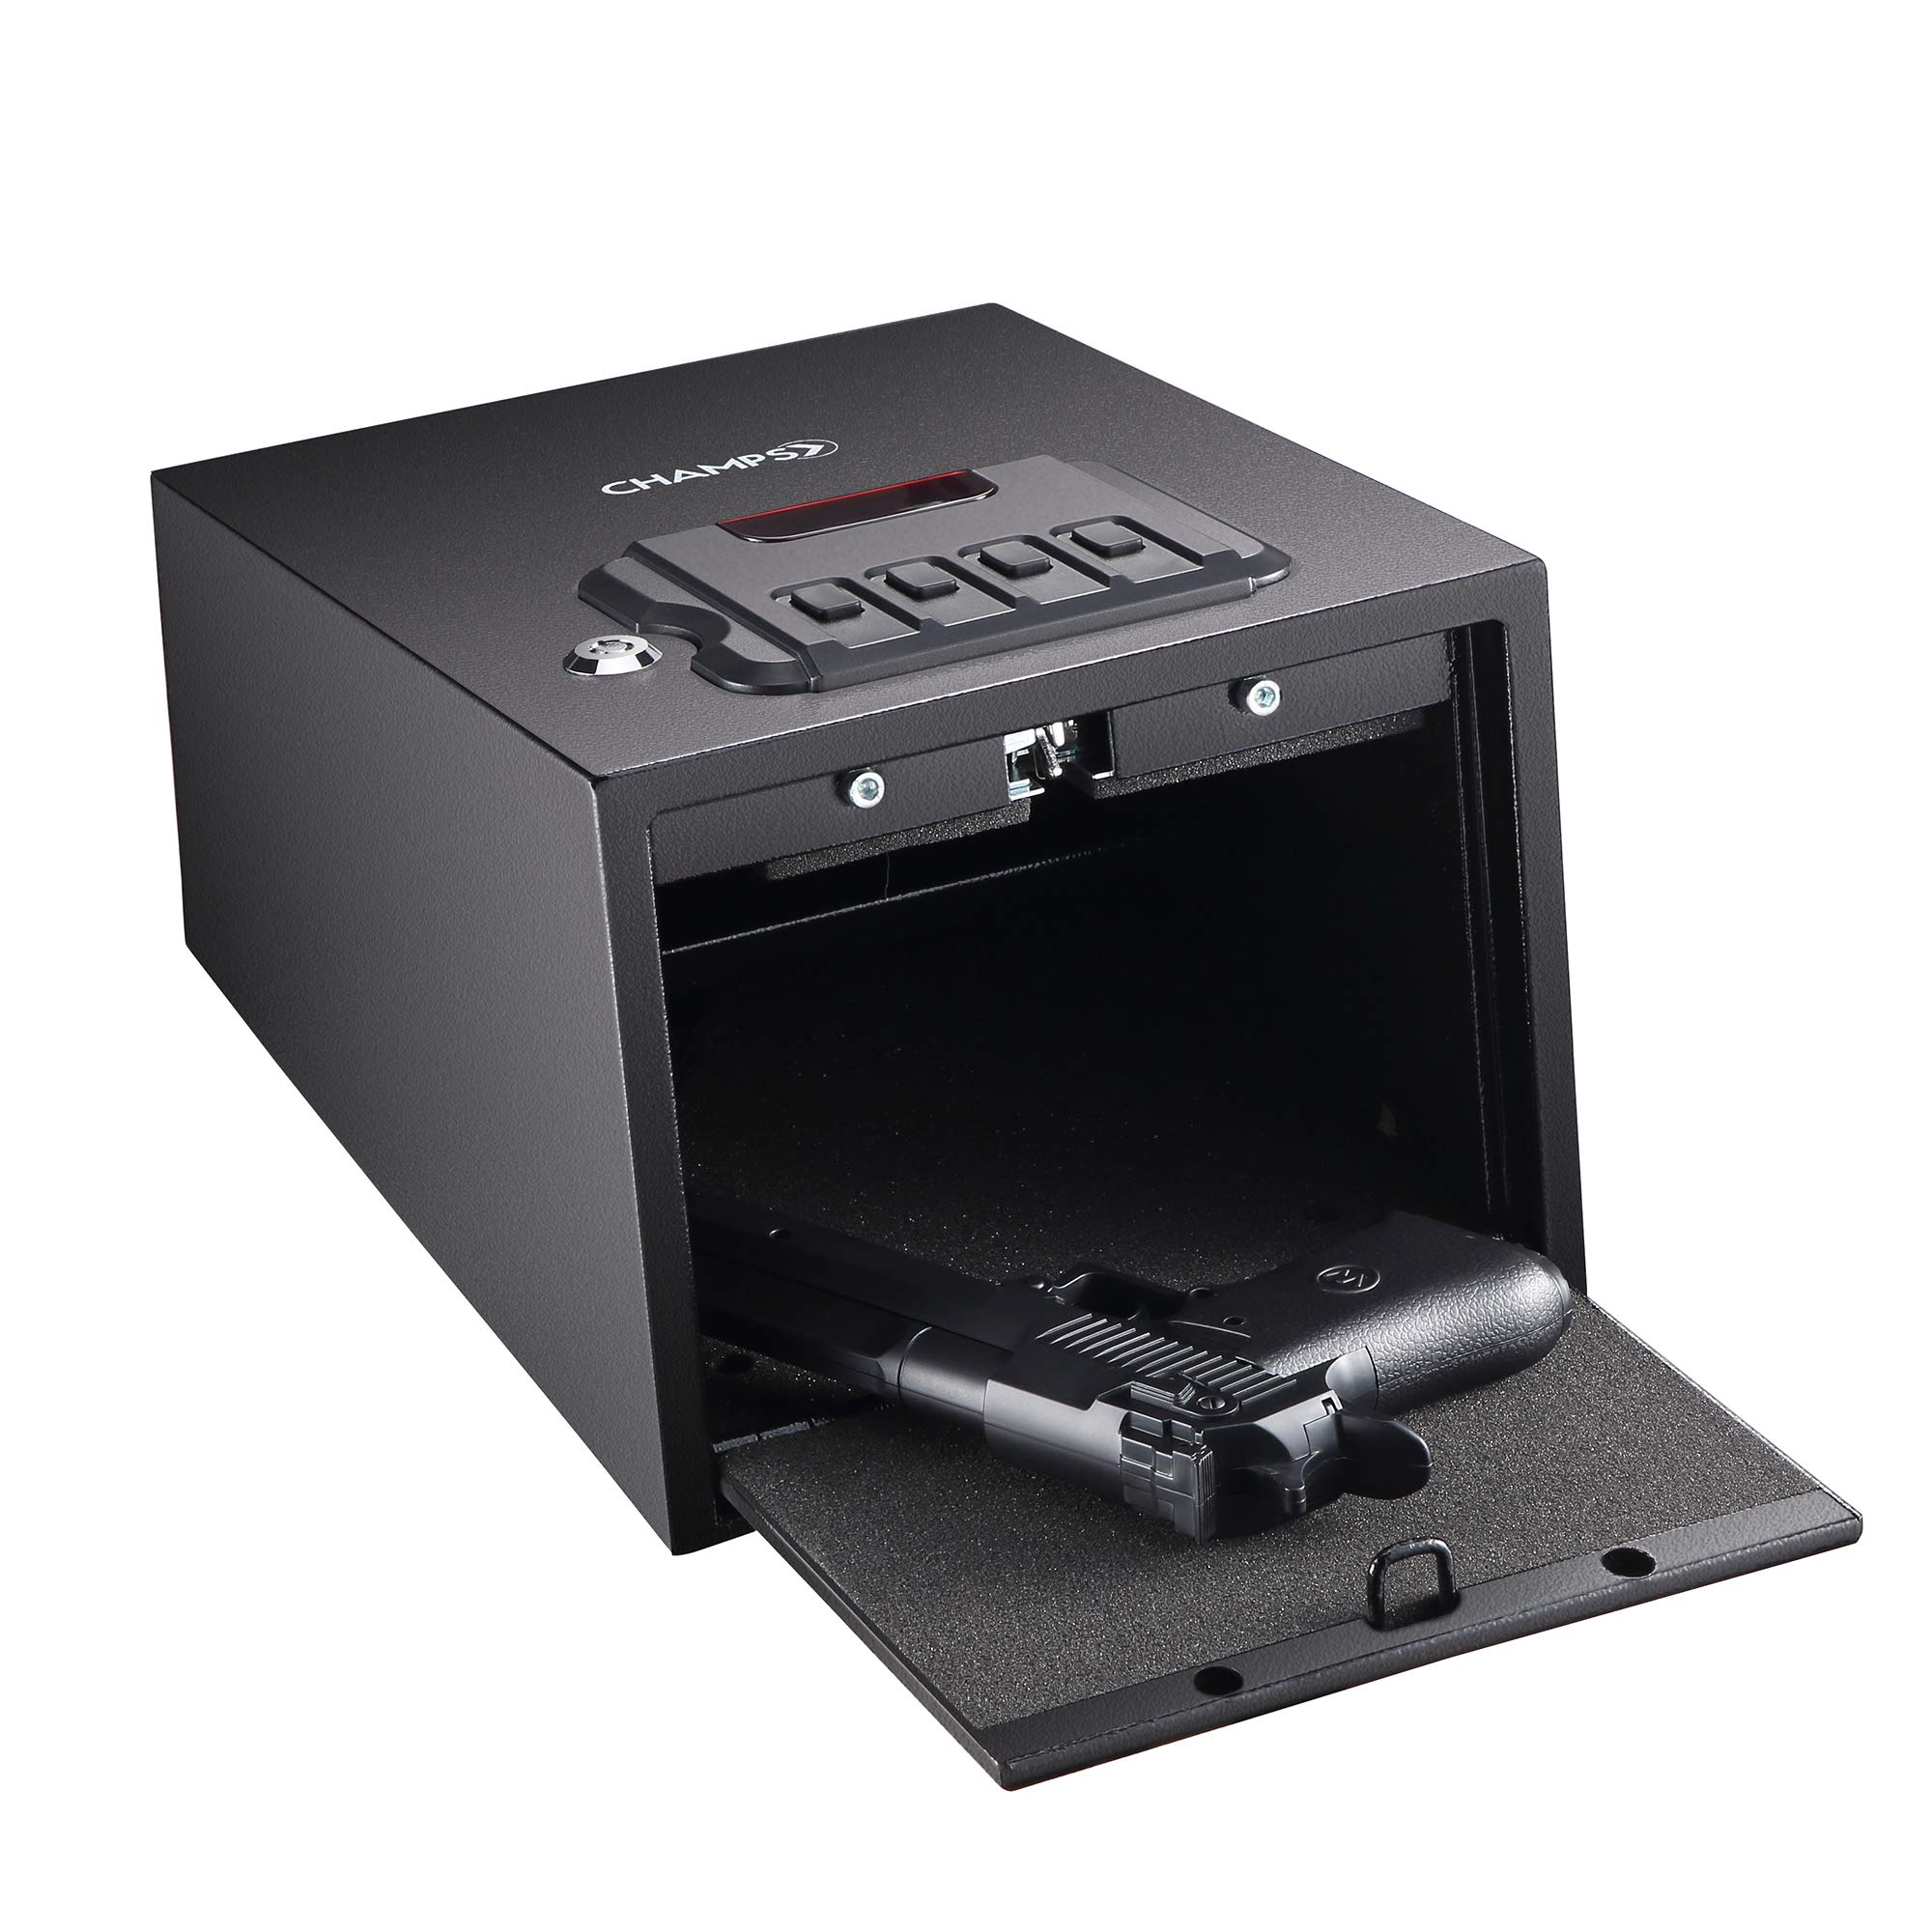 Champs Gun Safe Solid Steel Quick Access Electronic Pistol Safe with Auto-Open Lid, Wall Mount Bracket, Anti-Thief Alarm System